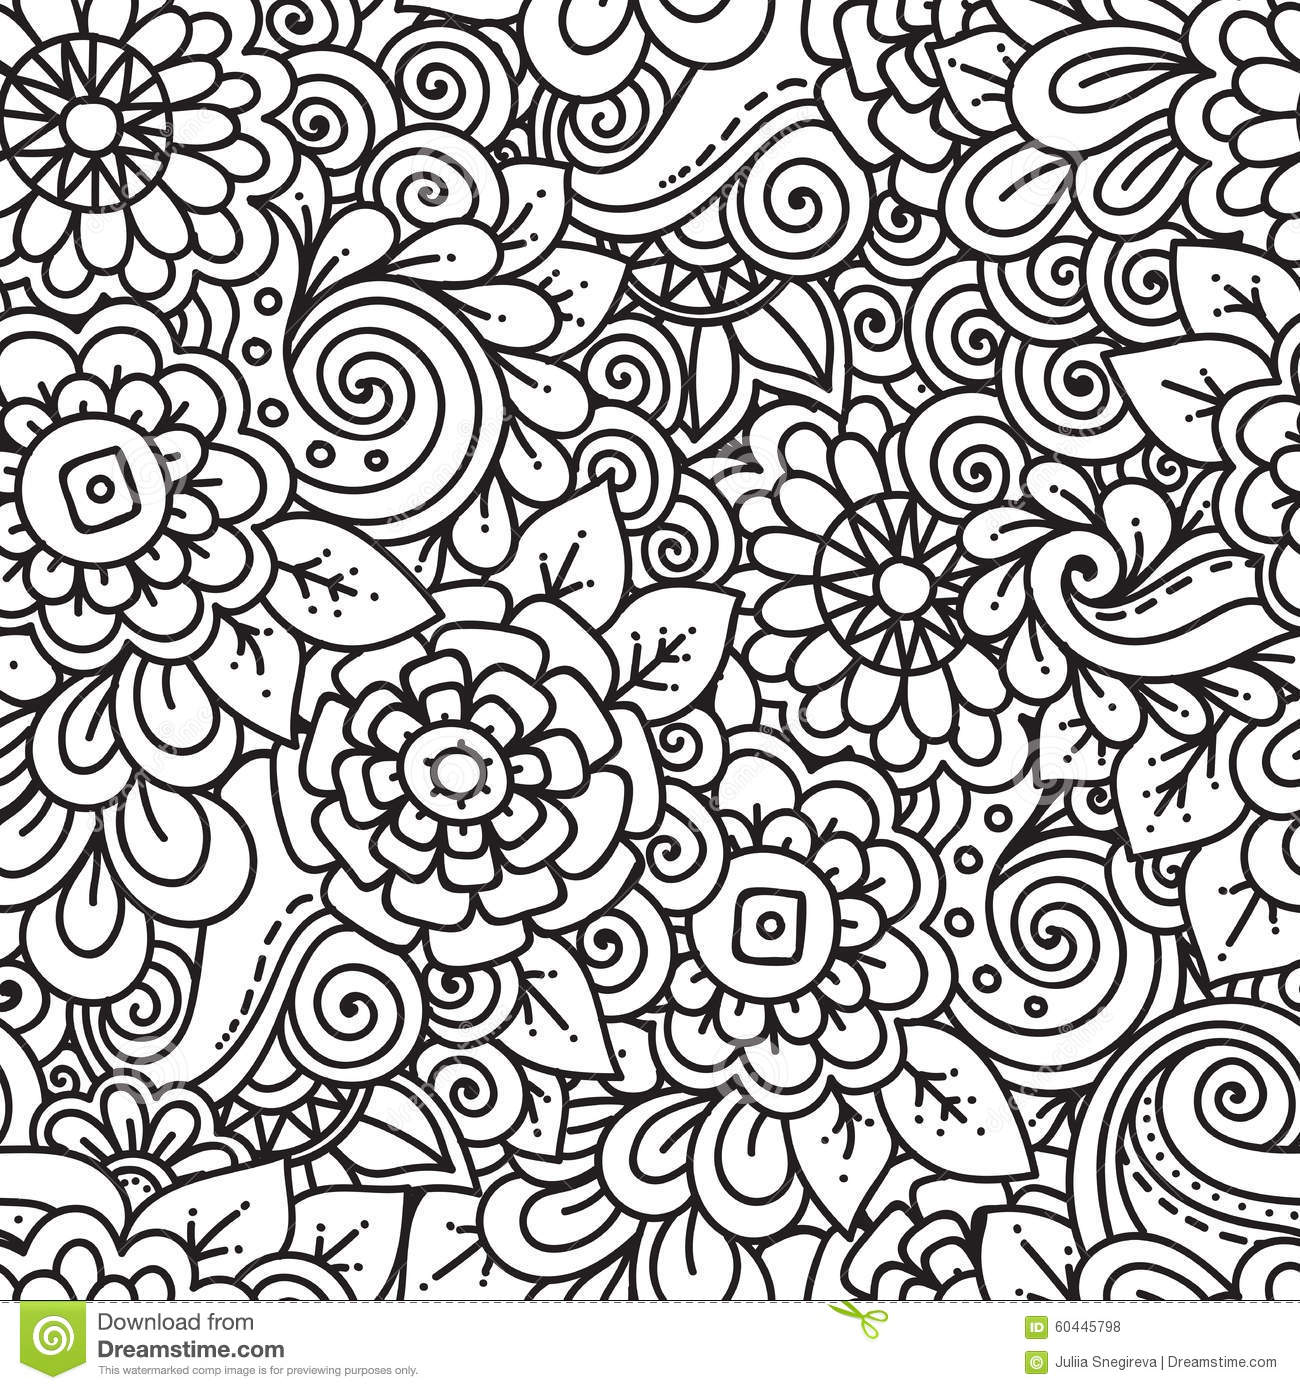 Seamless Floral Retro Doodle Black And White Pattern In